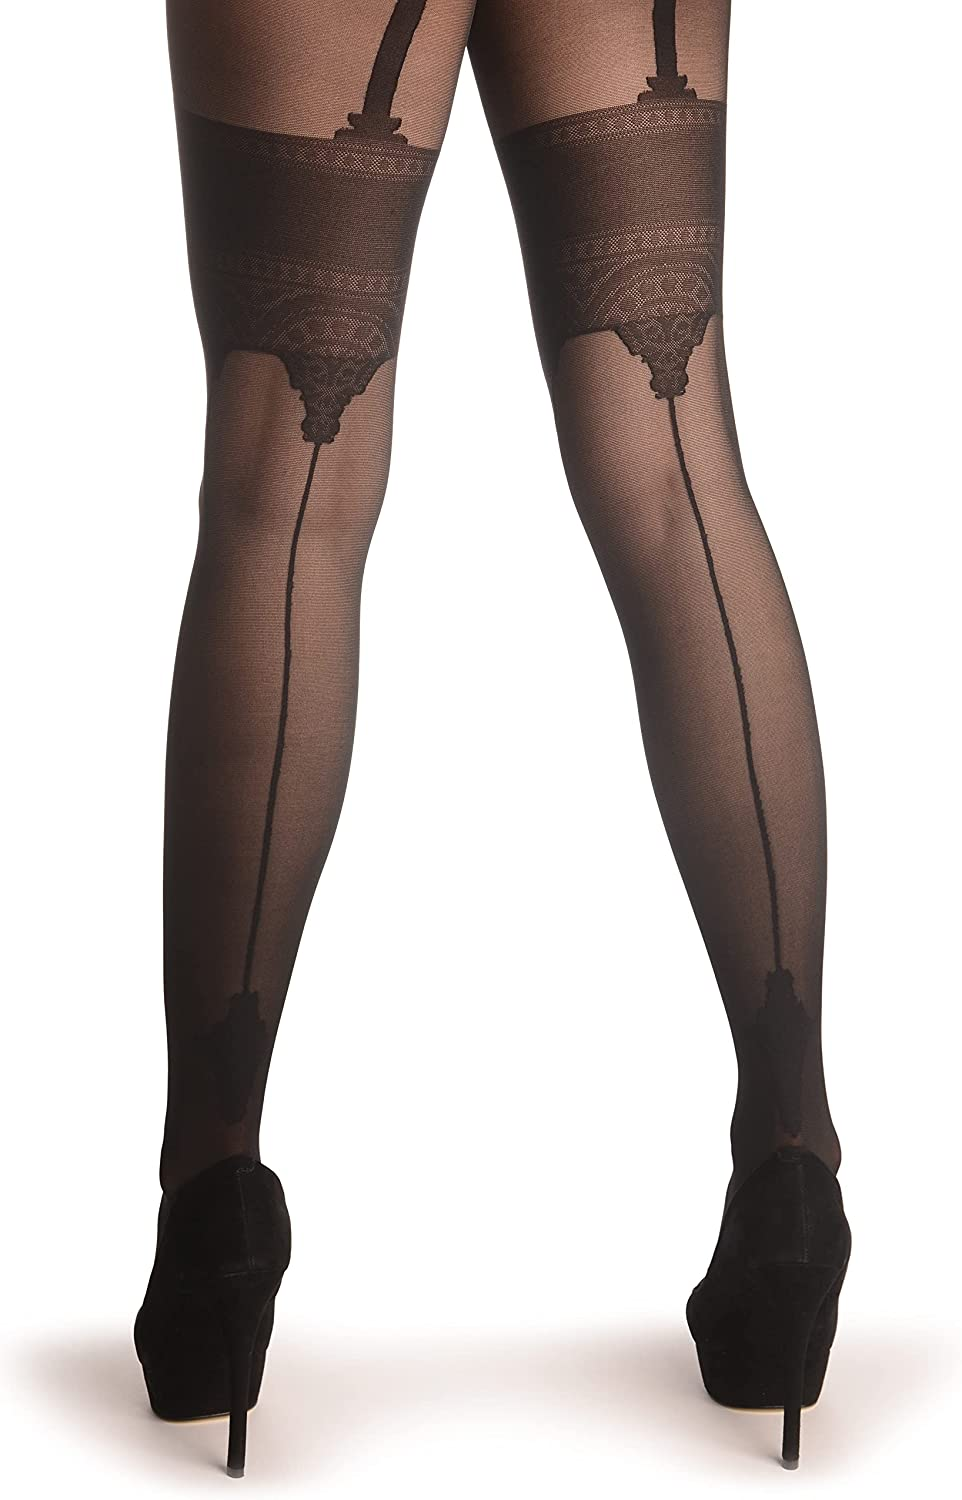 Black With Faux Crowned Stockings & Back Seam - Pantyhose (Tights)